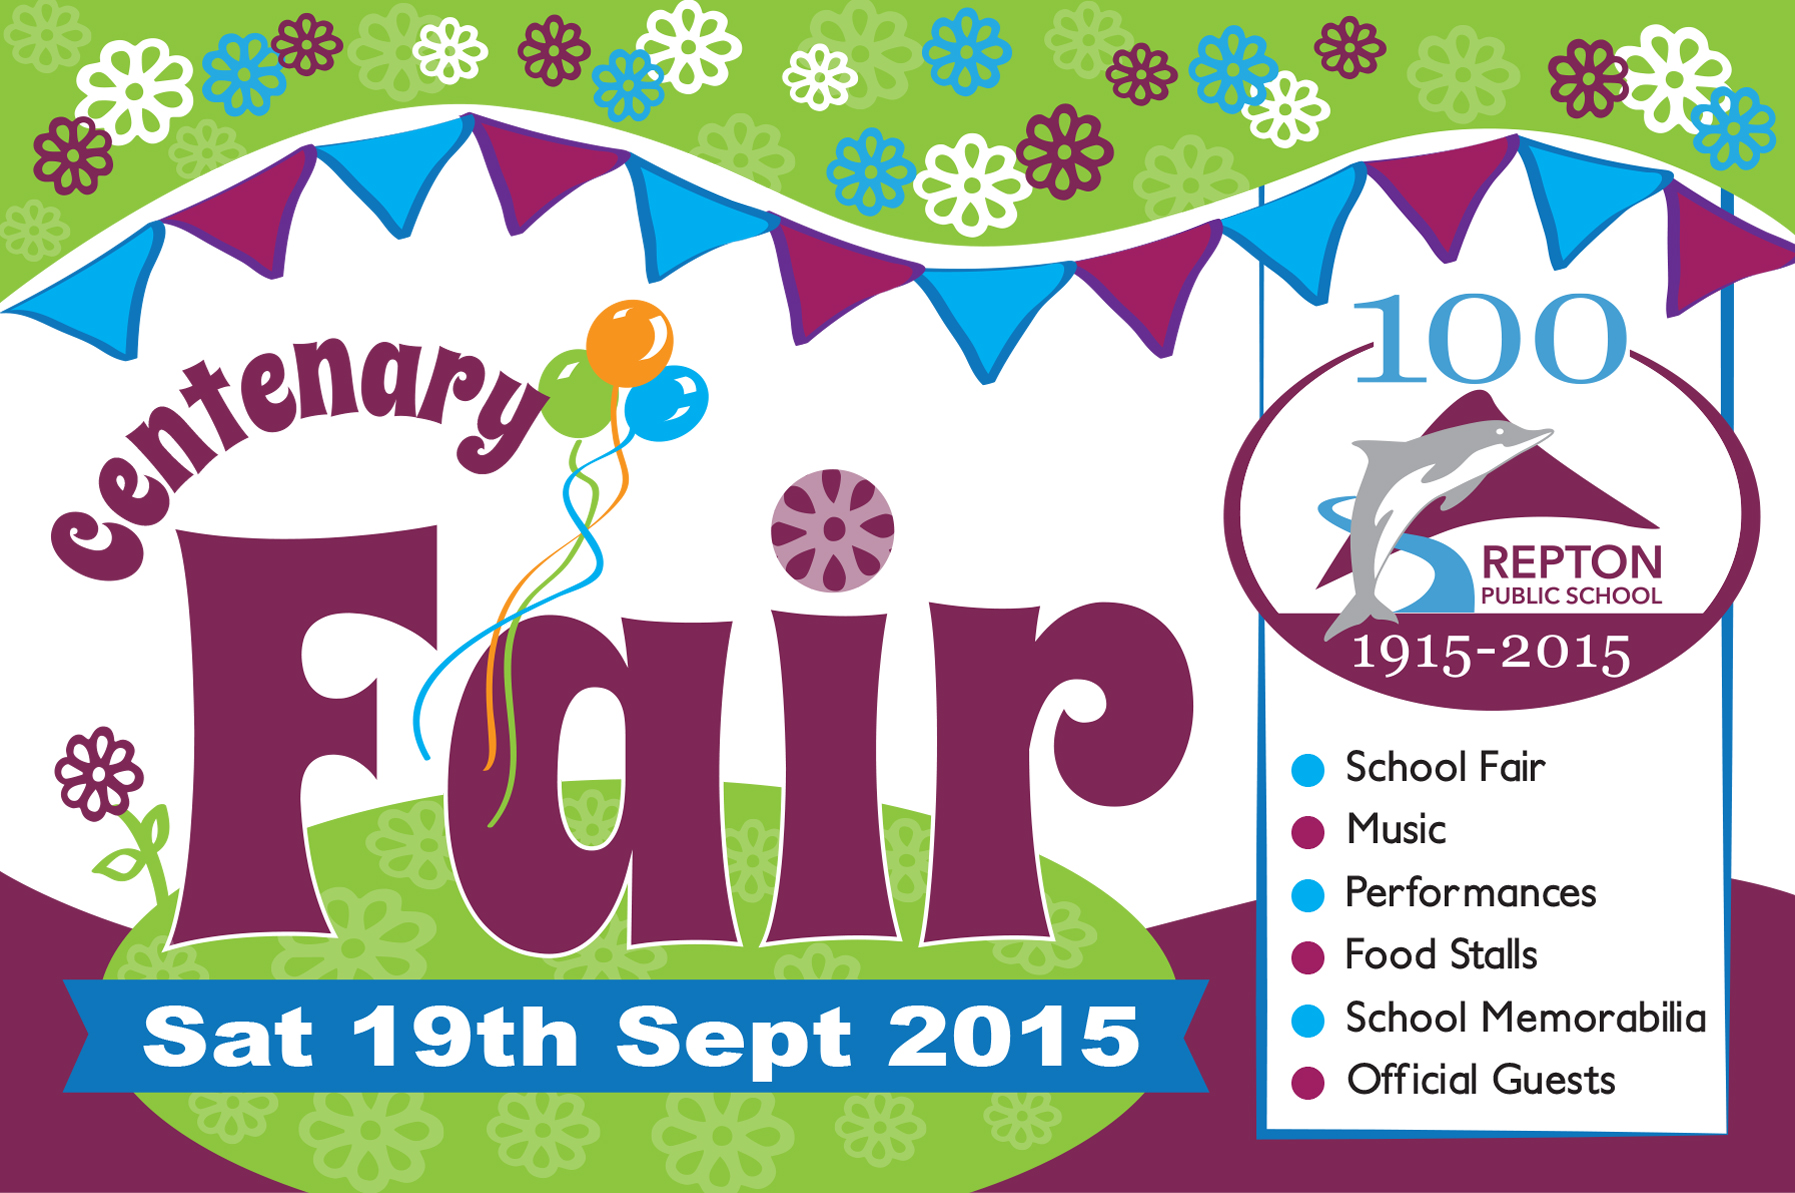 Centenary Fair Saturday 19th September, 2015